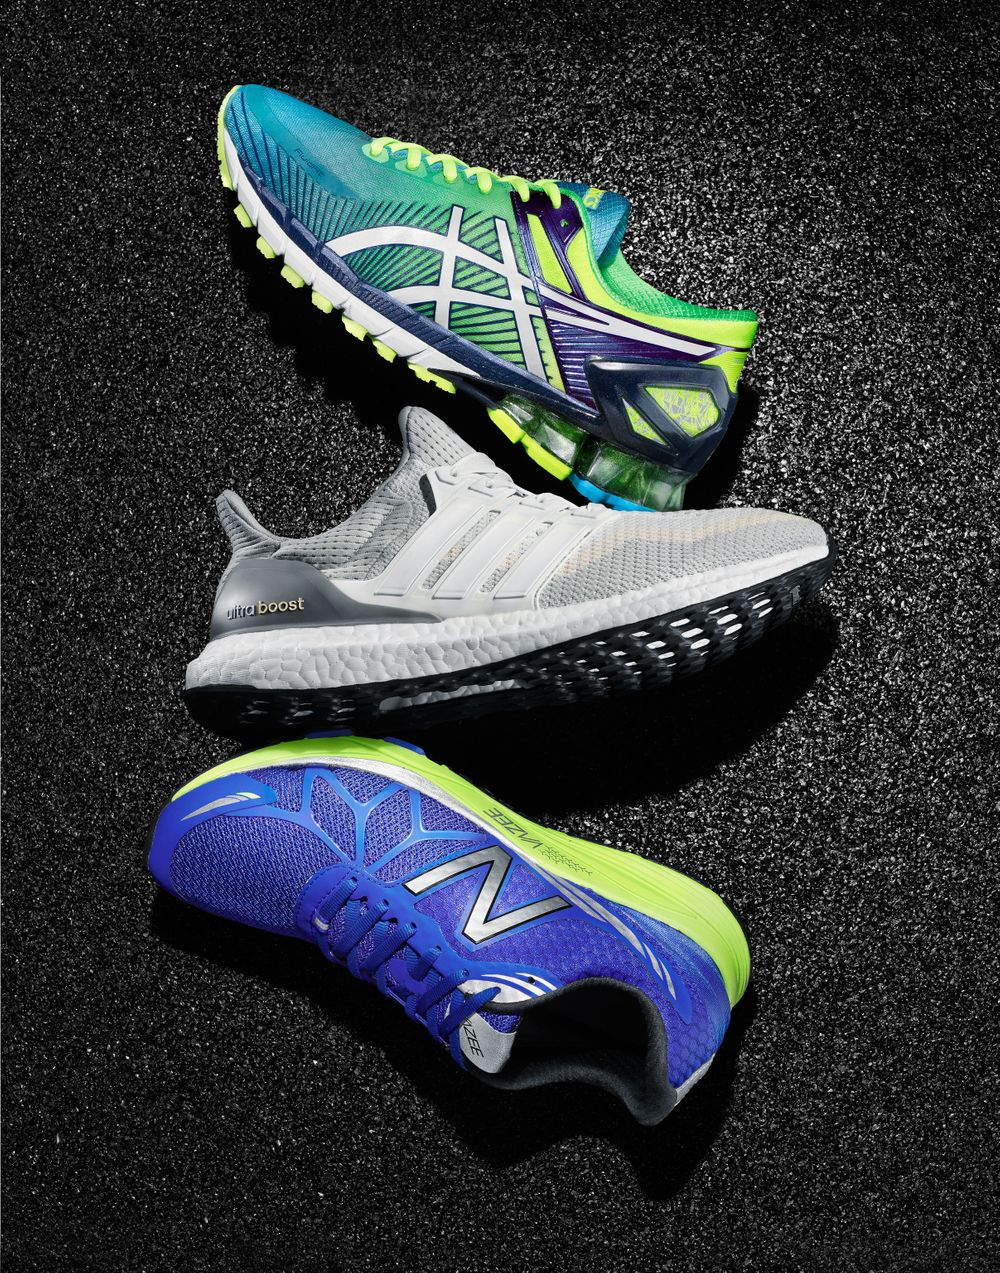 Running shoes editorial photography